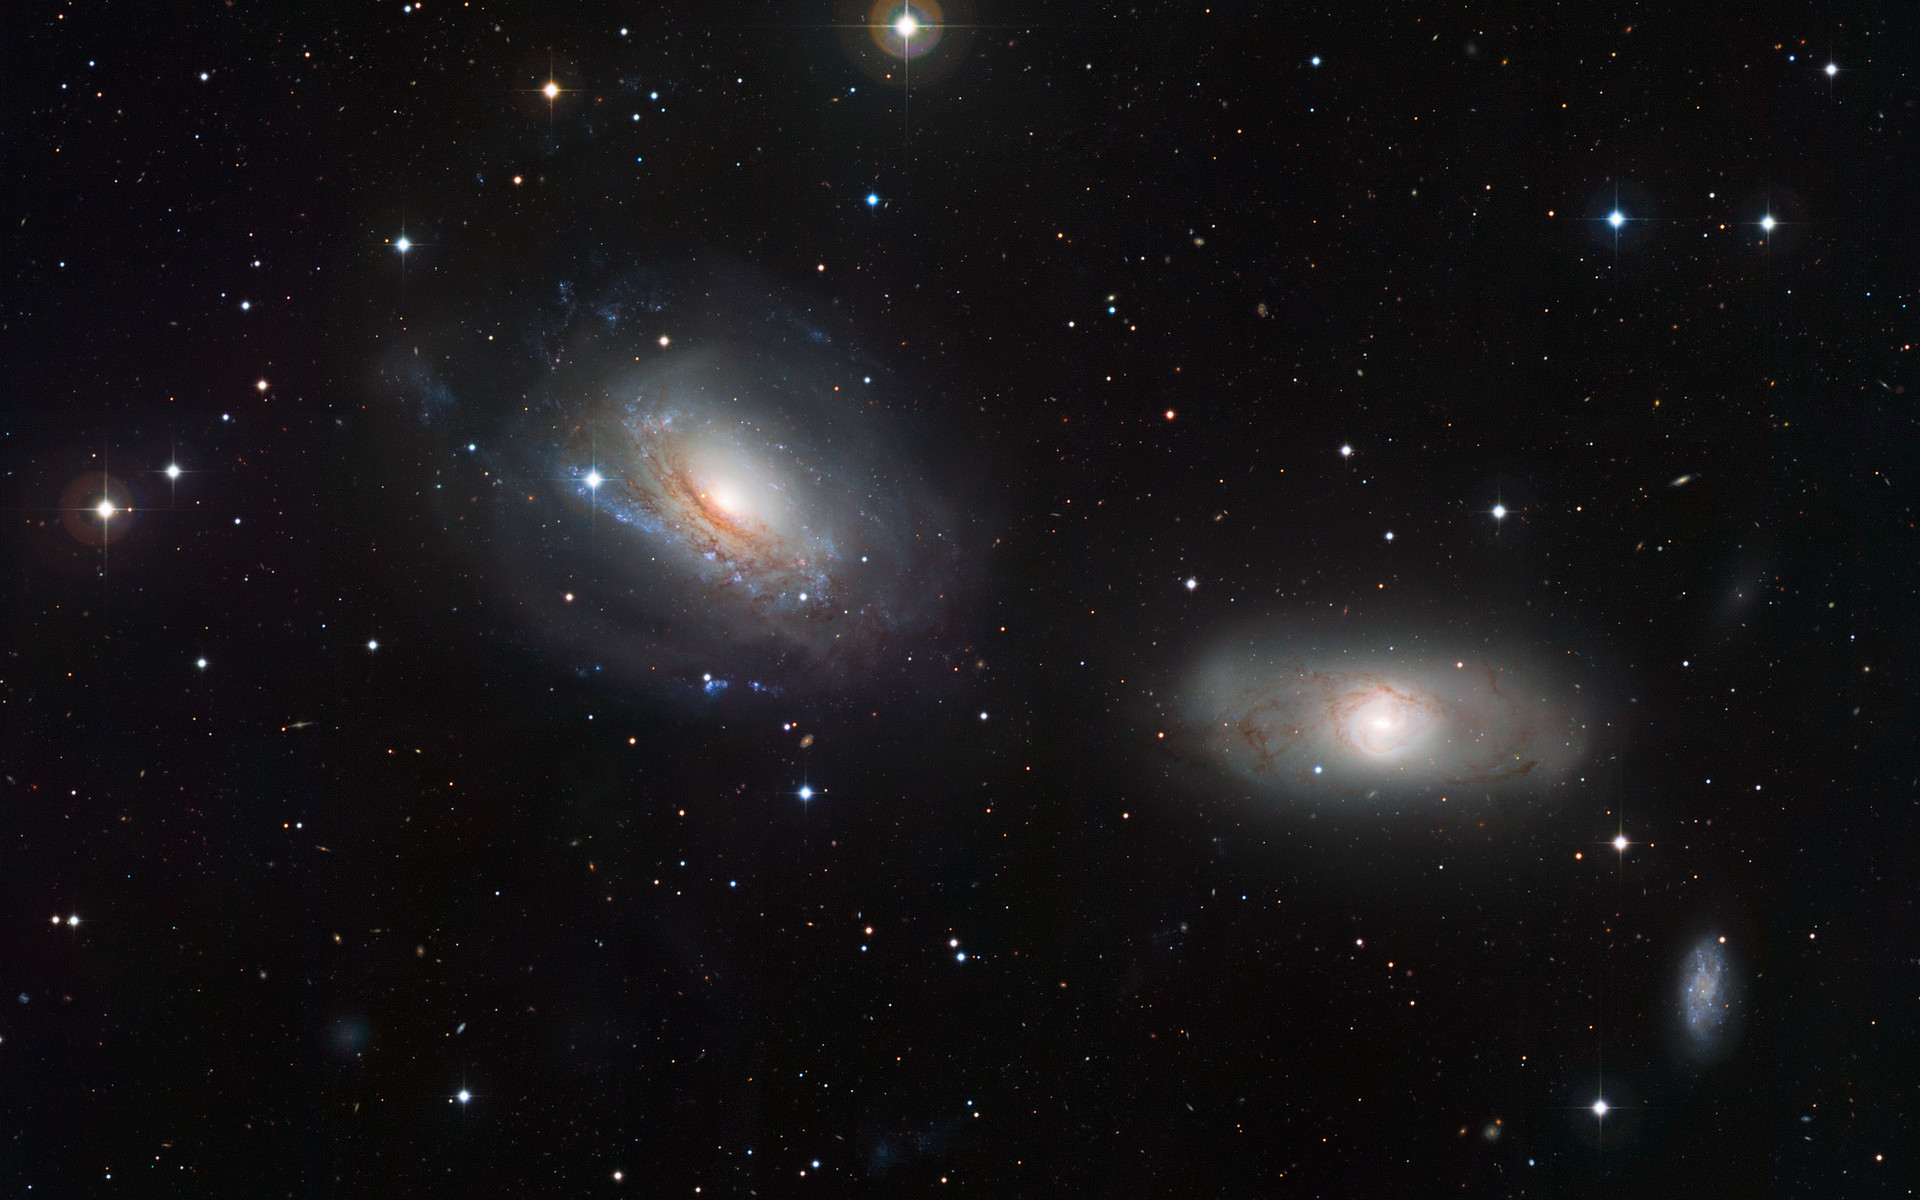 This image from the Wide Field Imager on the MPG/ESO 2.2-metre telescope at the La Silla Observatory in Chile captures the pair of galaxies NGC 3169 (left) and NGC 3166 (right). These adjacent galaxies display some curious features, demonstrating that each member of the duo is close enough to feel the distorting gravitational influence of the other. The gravitational tug of war has warped the spiral shape of one galaxy, NGC 3169, and fragmented the dust lanes in its companion NGC 3166. At the bottom-right of the pair, a third galaxy is portrayed, NGC 3165.